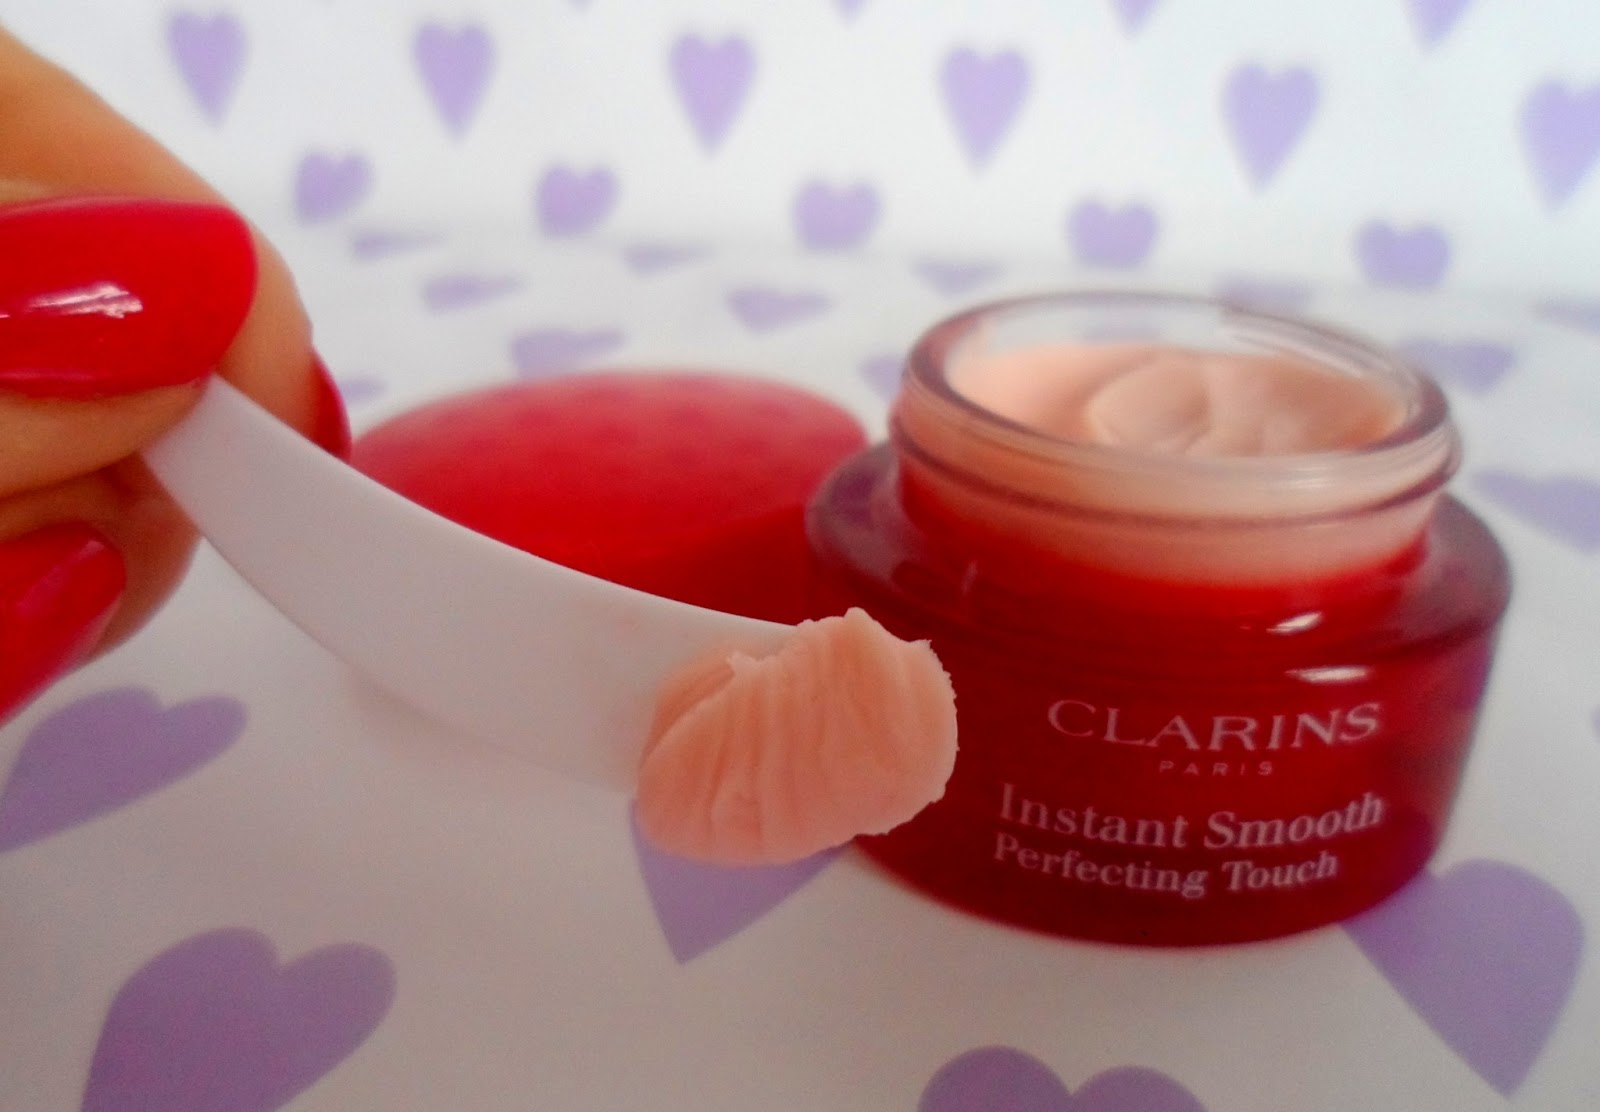 clarins smooth perfecting touch